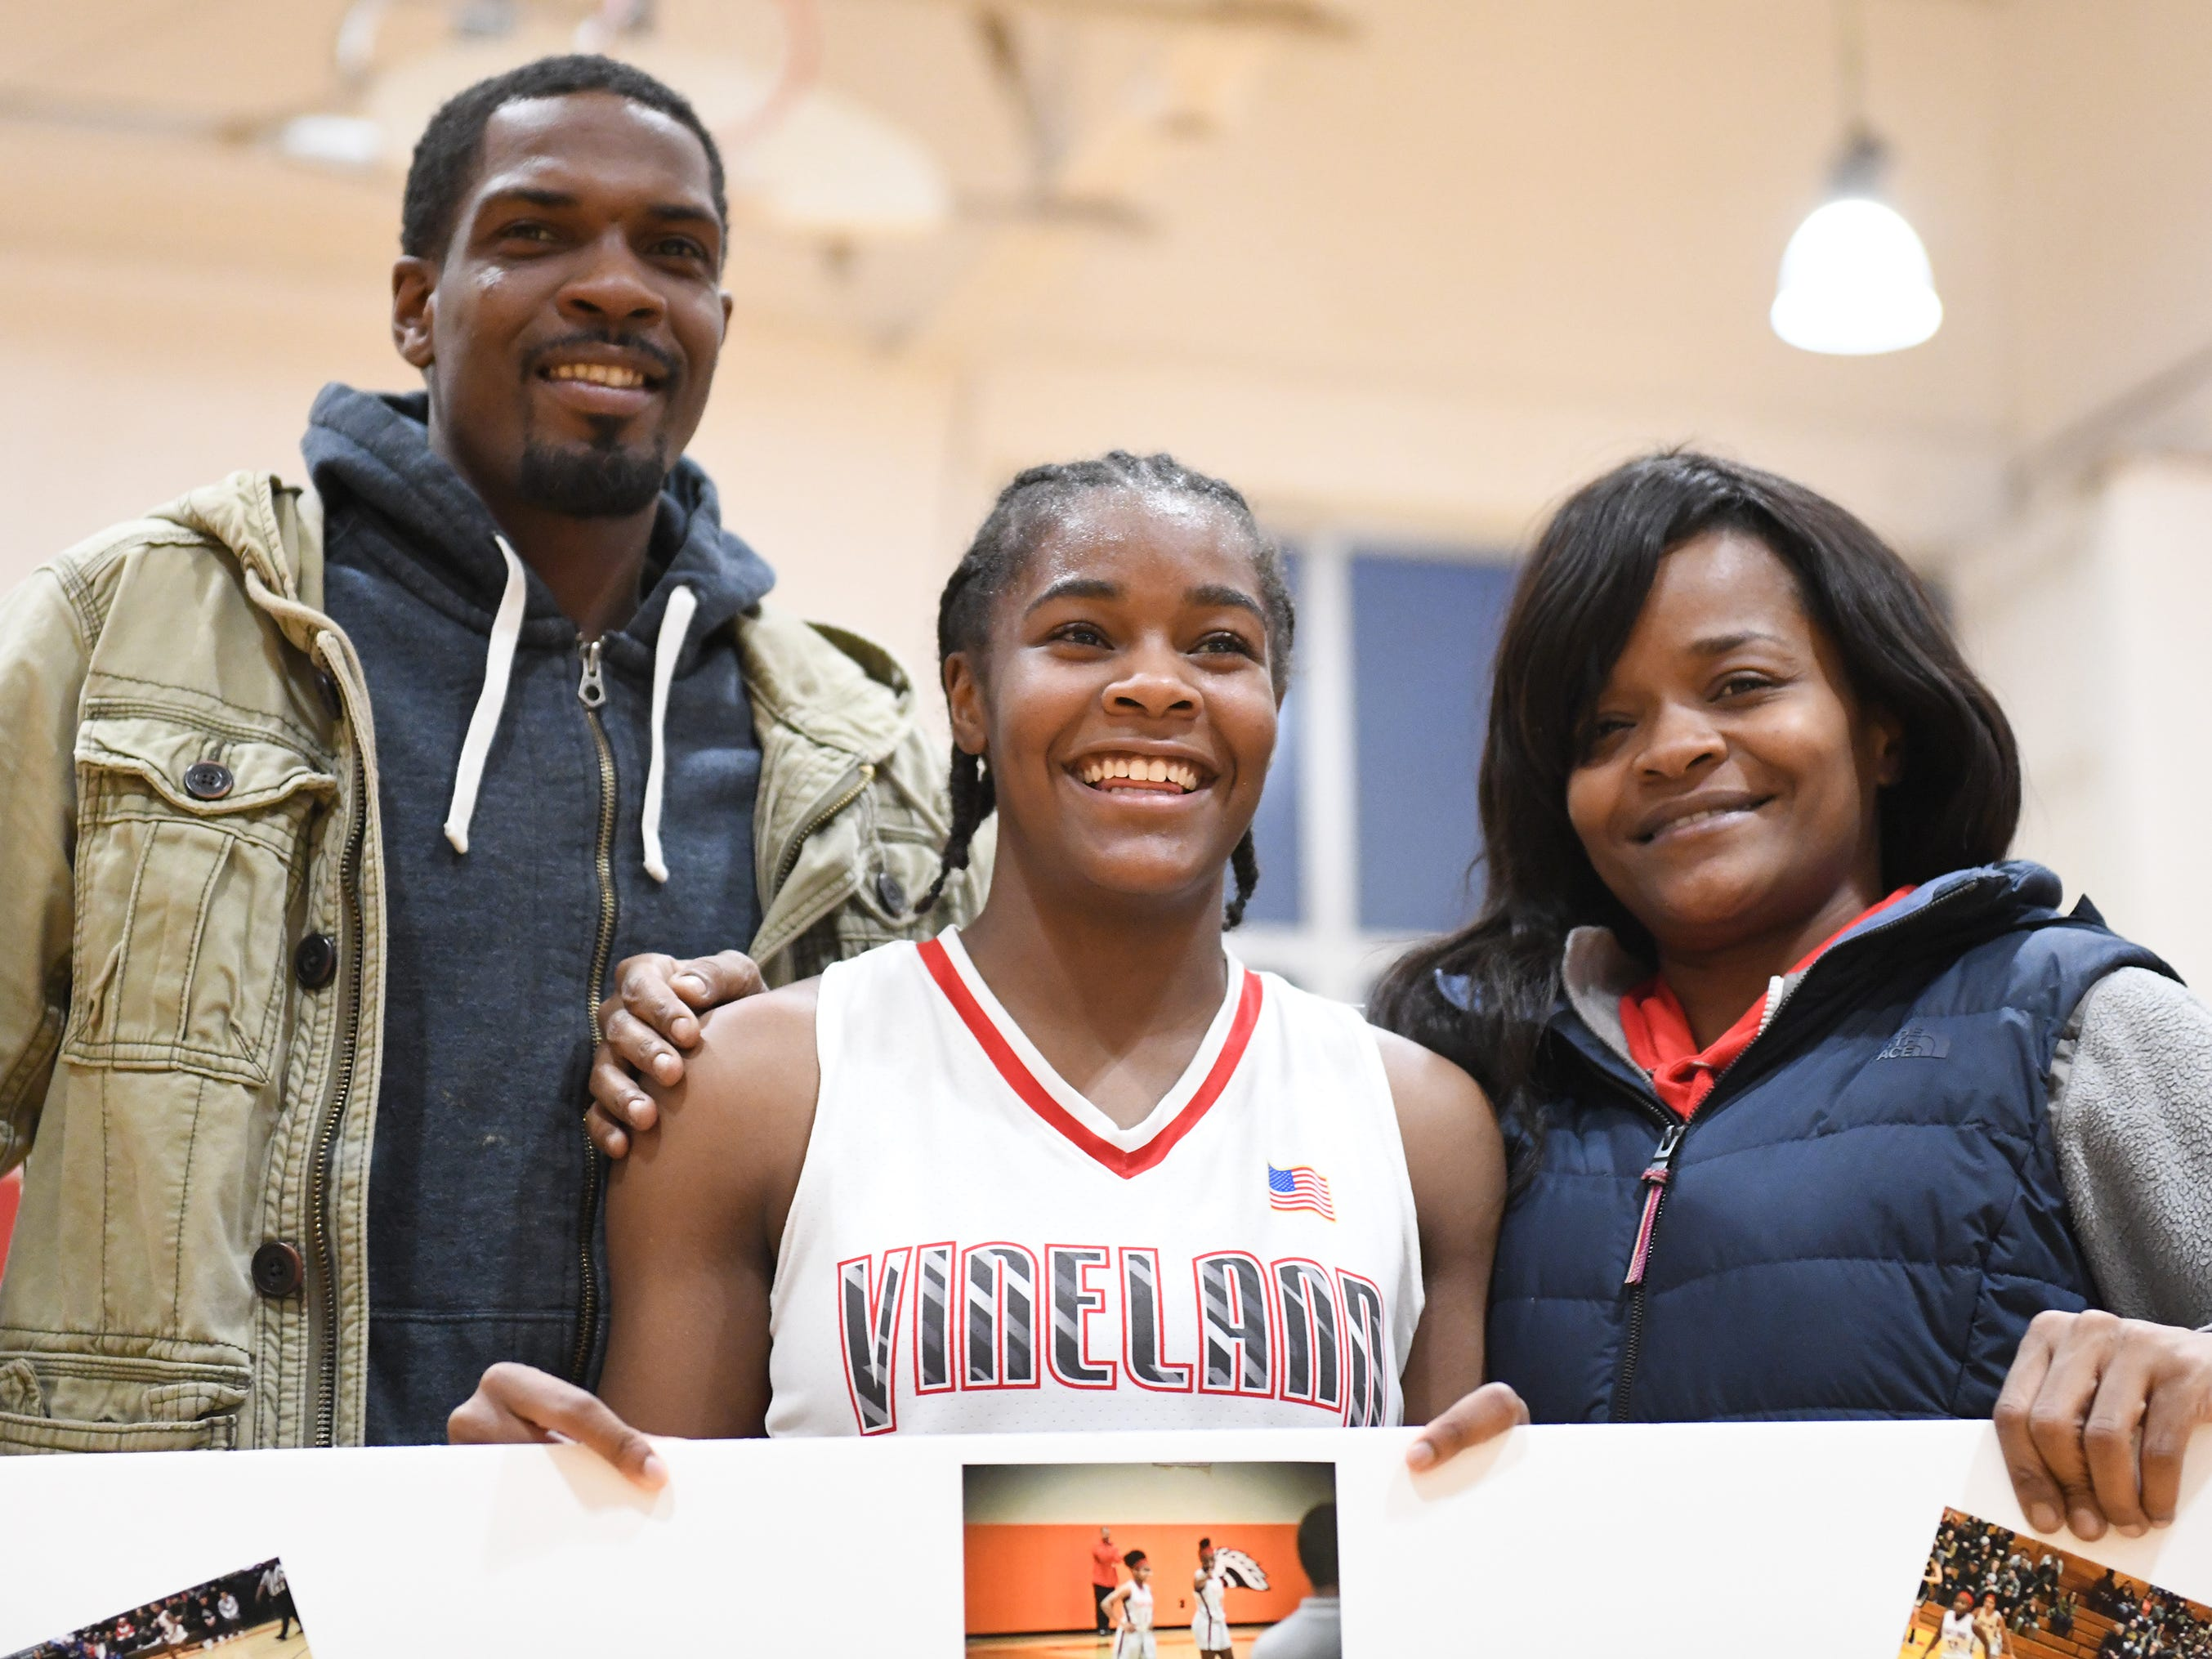 Vineland High School senior Briel Herbert celebrates her 1,000th career point with her parents Brenda and Neal Herbert after defeating Millville 57-35 on Wednesday, Jan. 16, 2019.